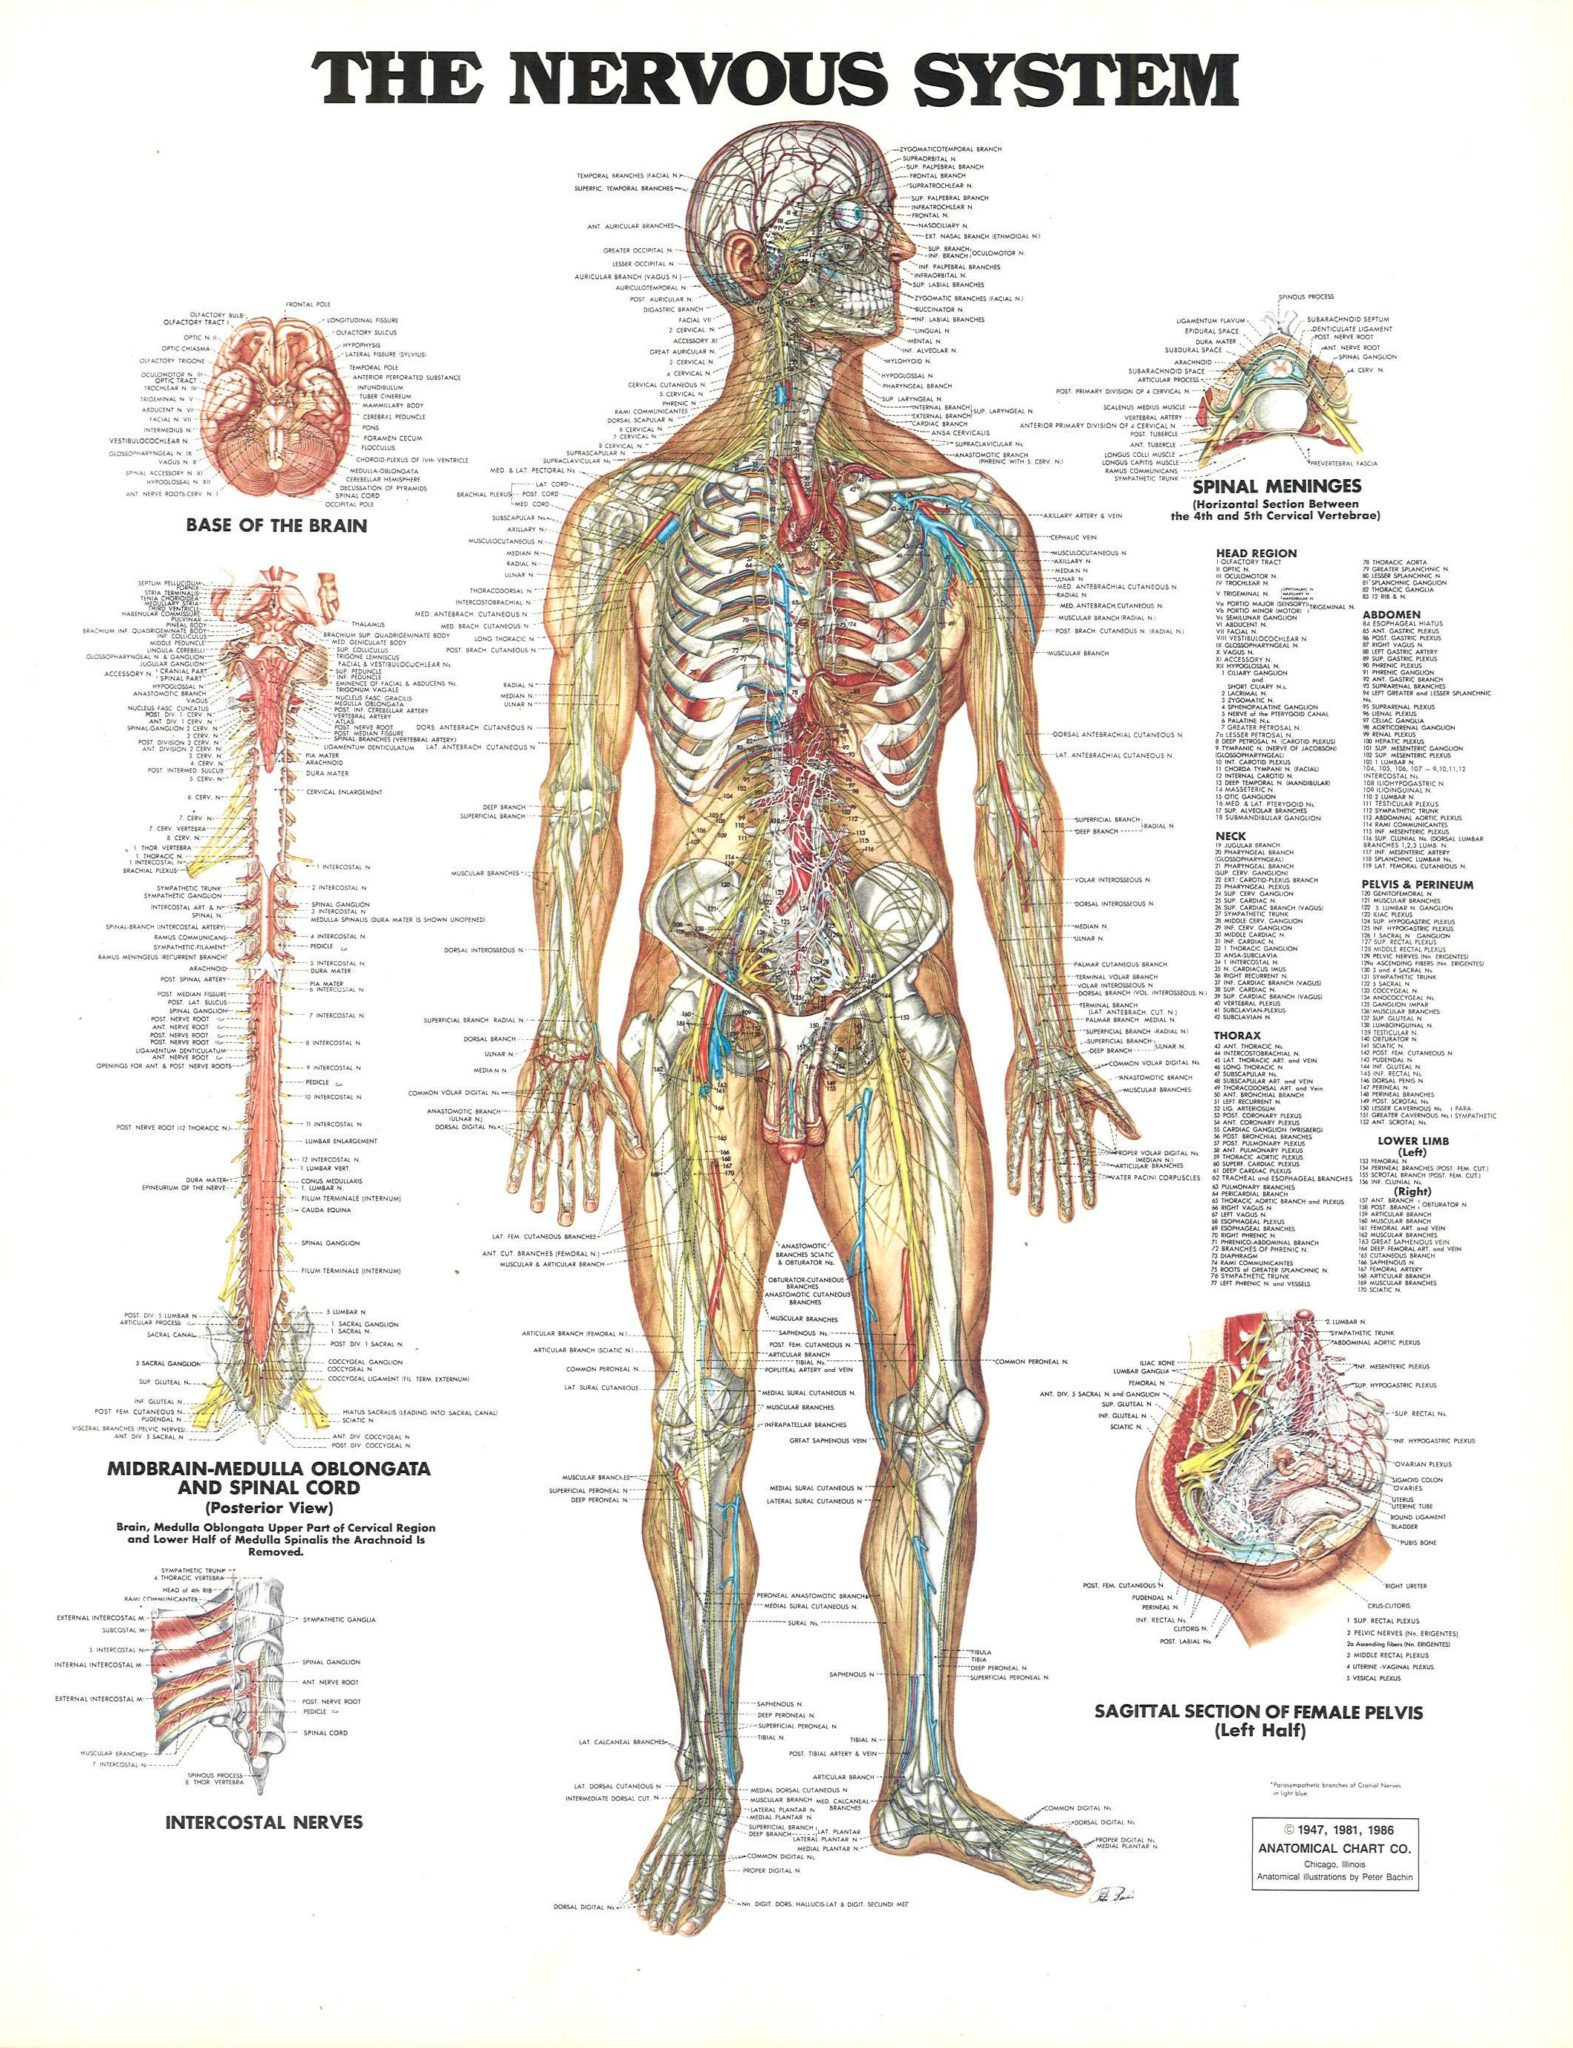 understanding the anatomy of the nervous system | health life media, Muscles